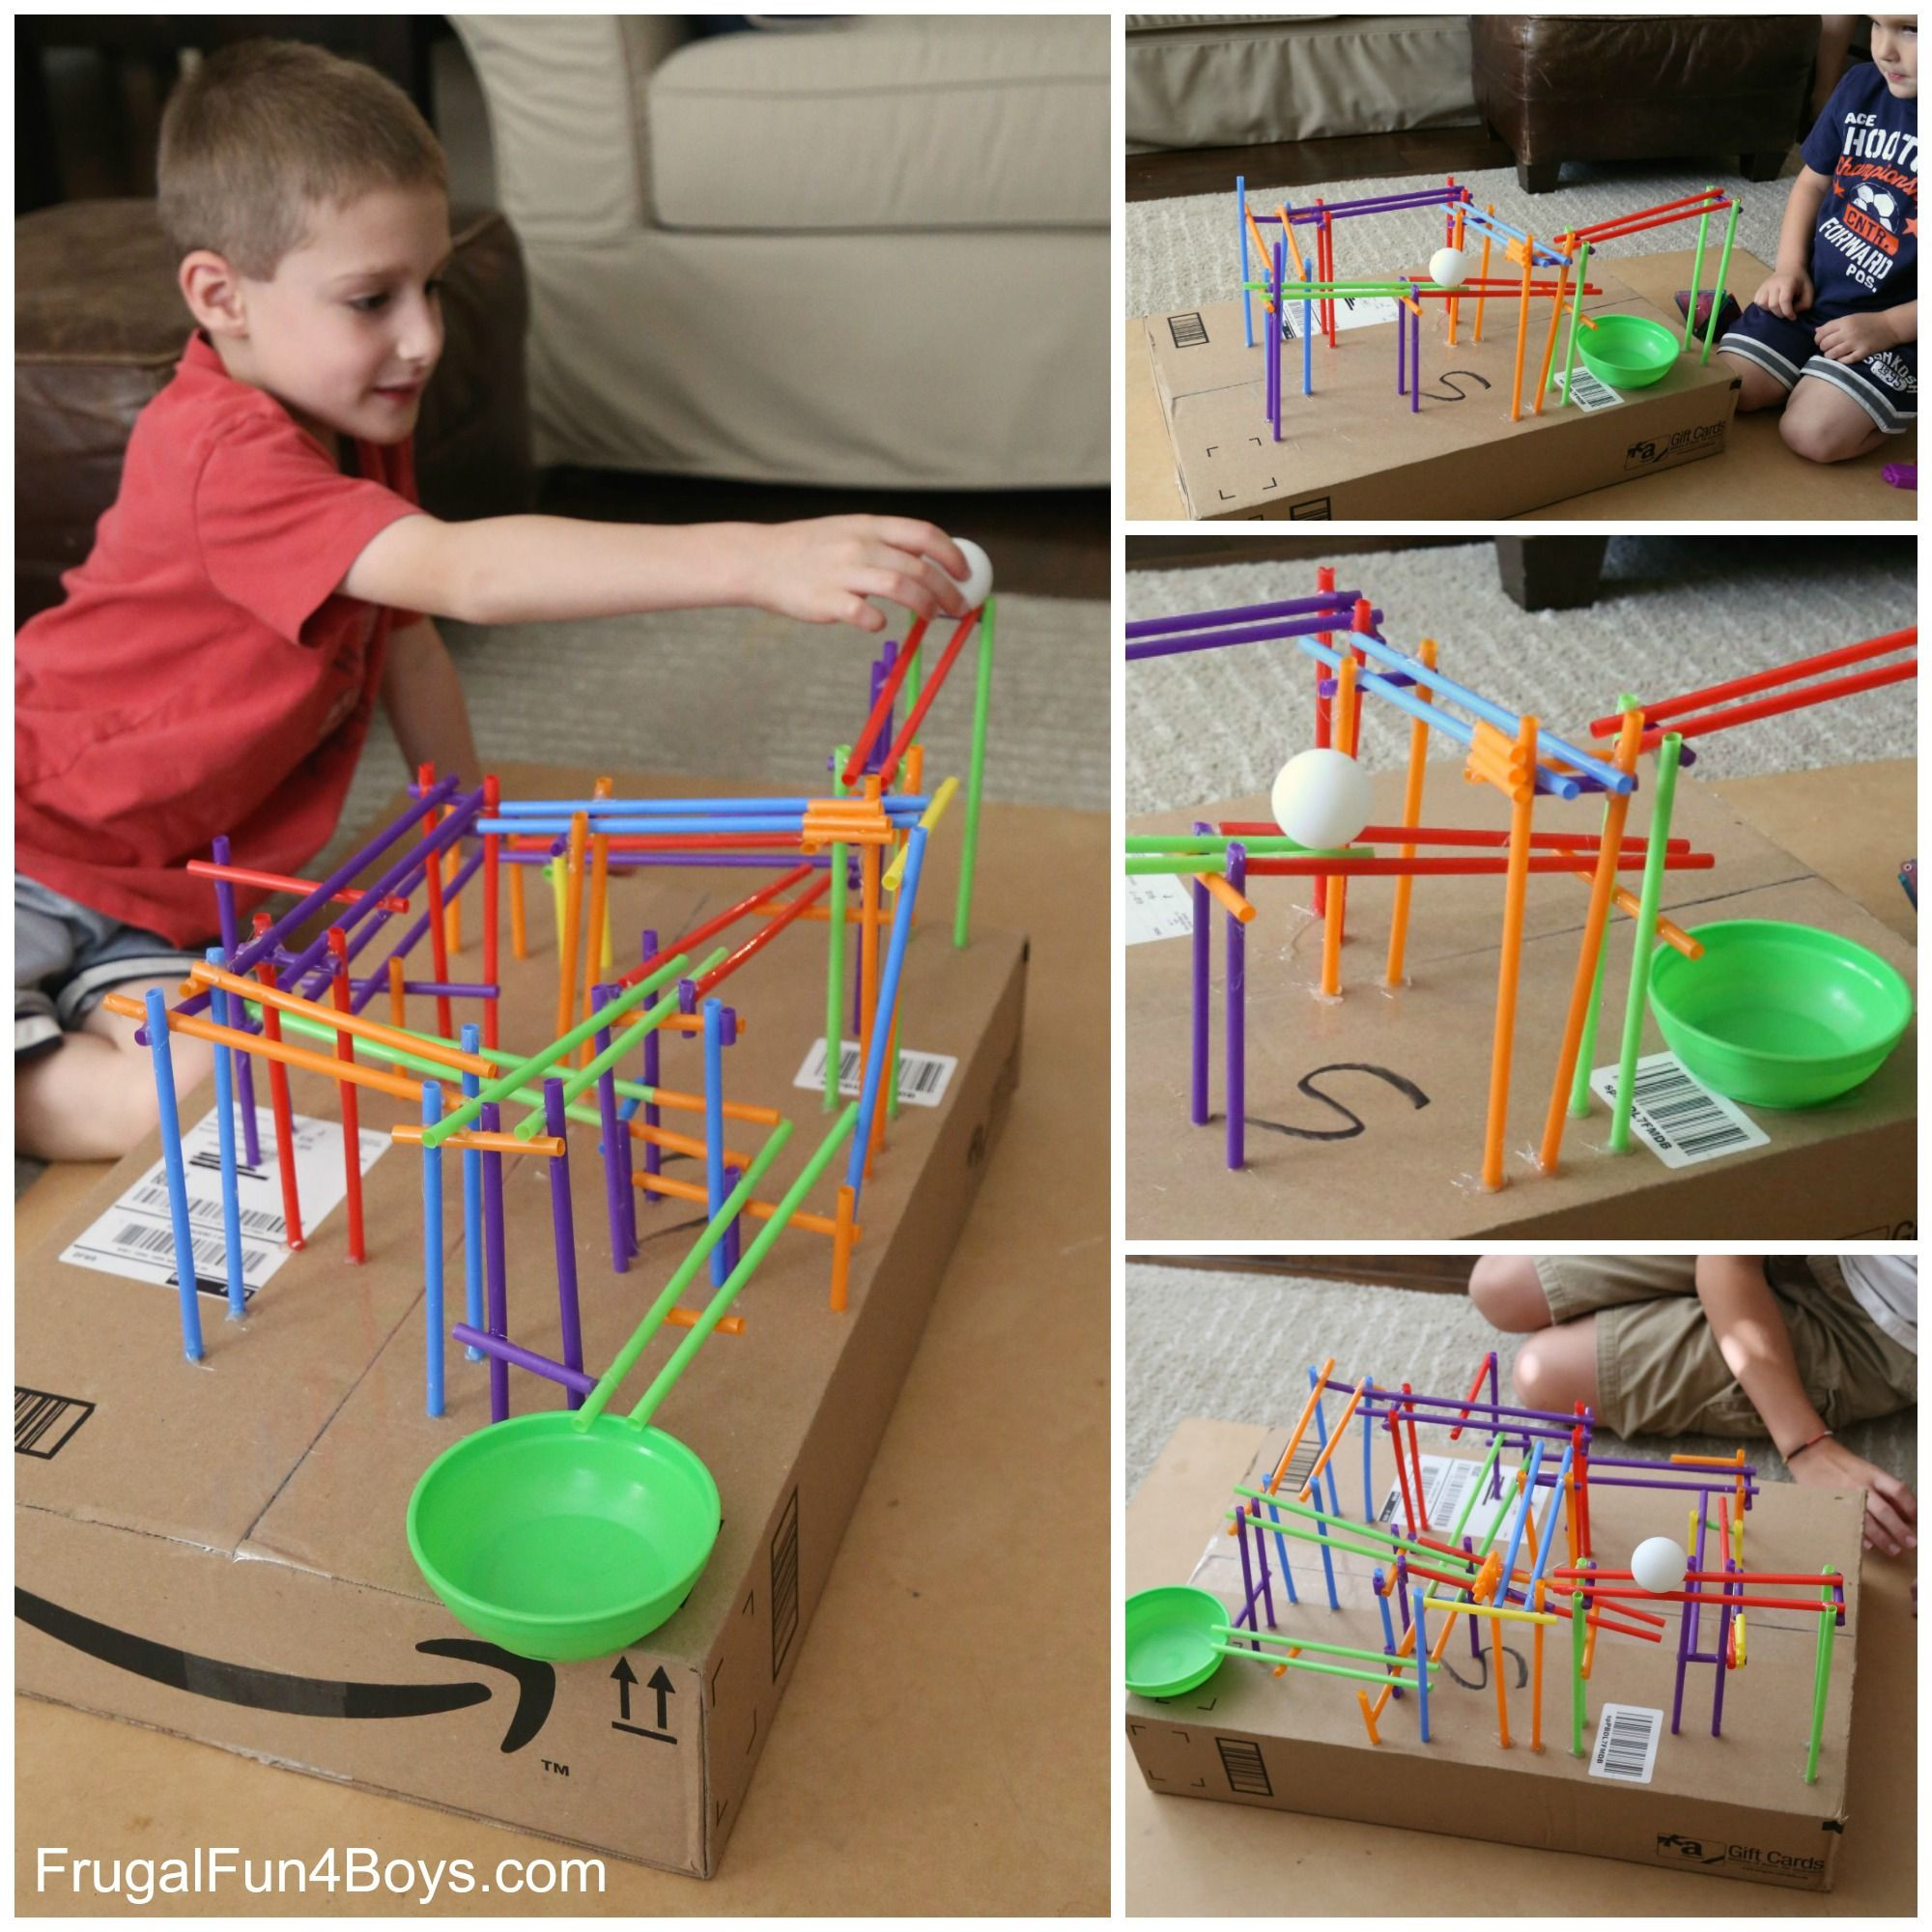 Best ideas about Projects For Kids . Save or Pin Engineering Project for Kids Build a Straw Roller Coaster Now.